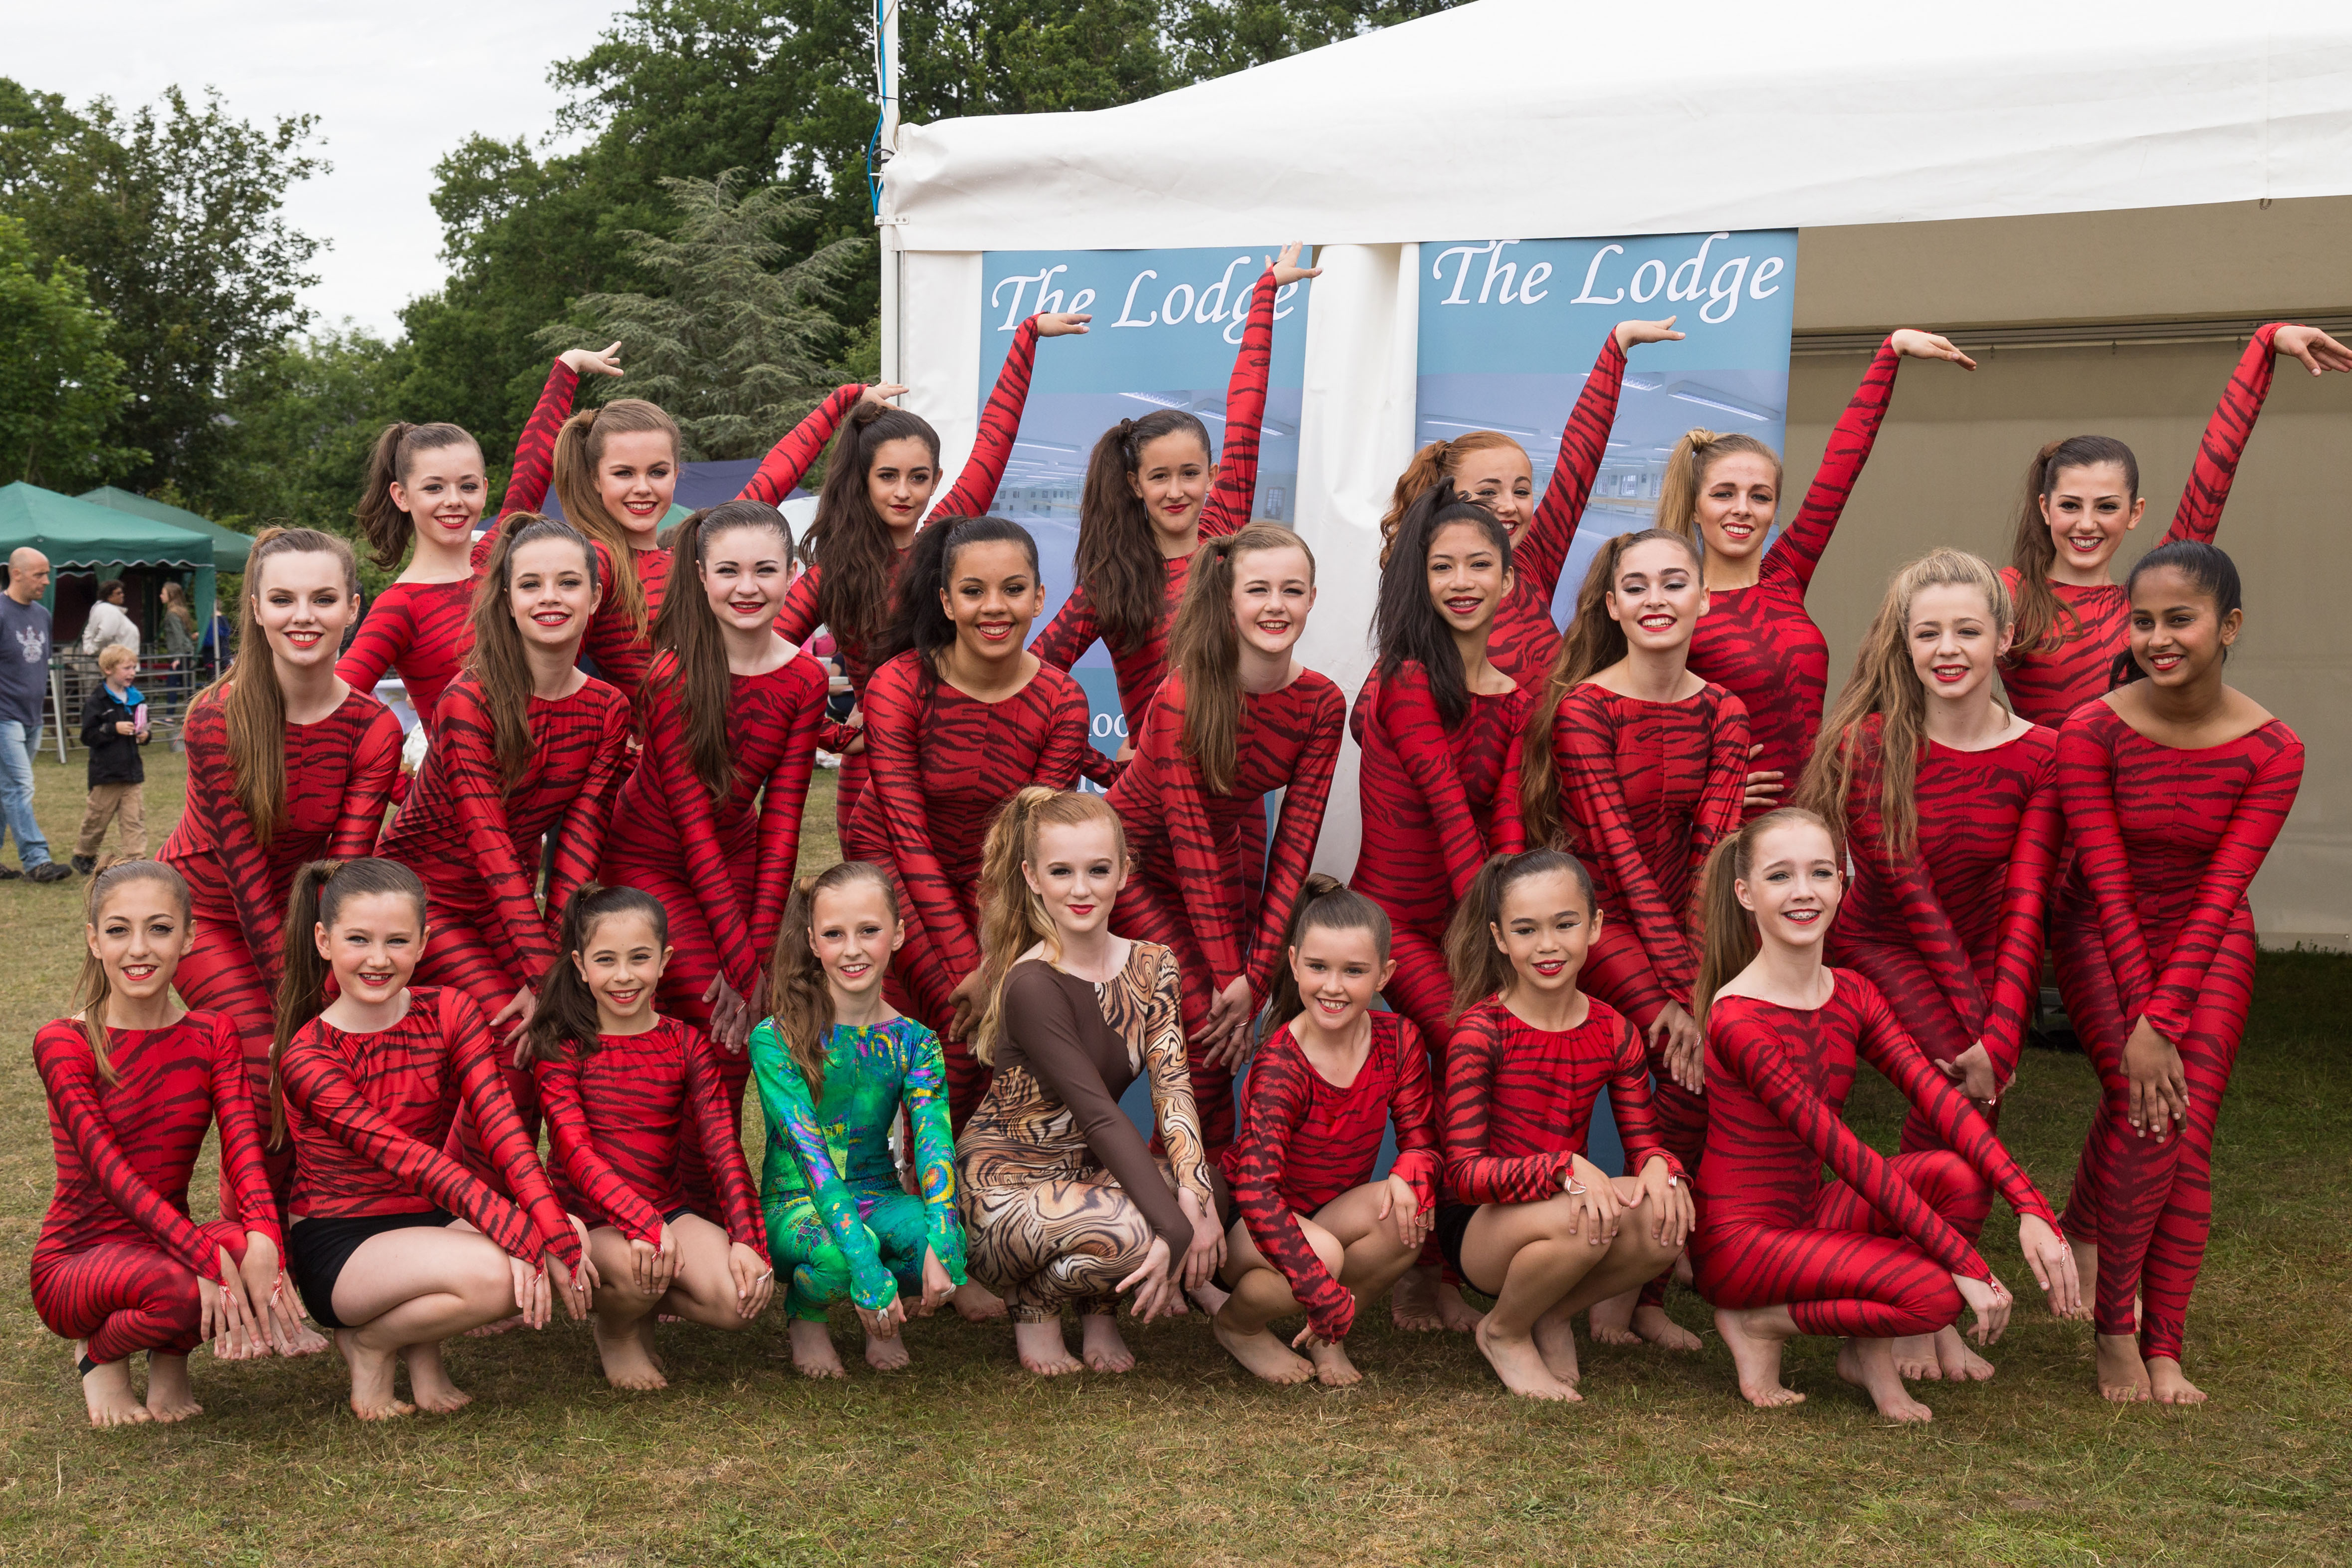 Summer Dance Courses At The Lodge School of Theatre Dance